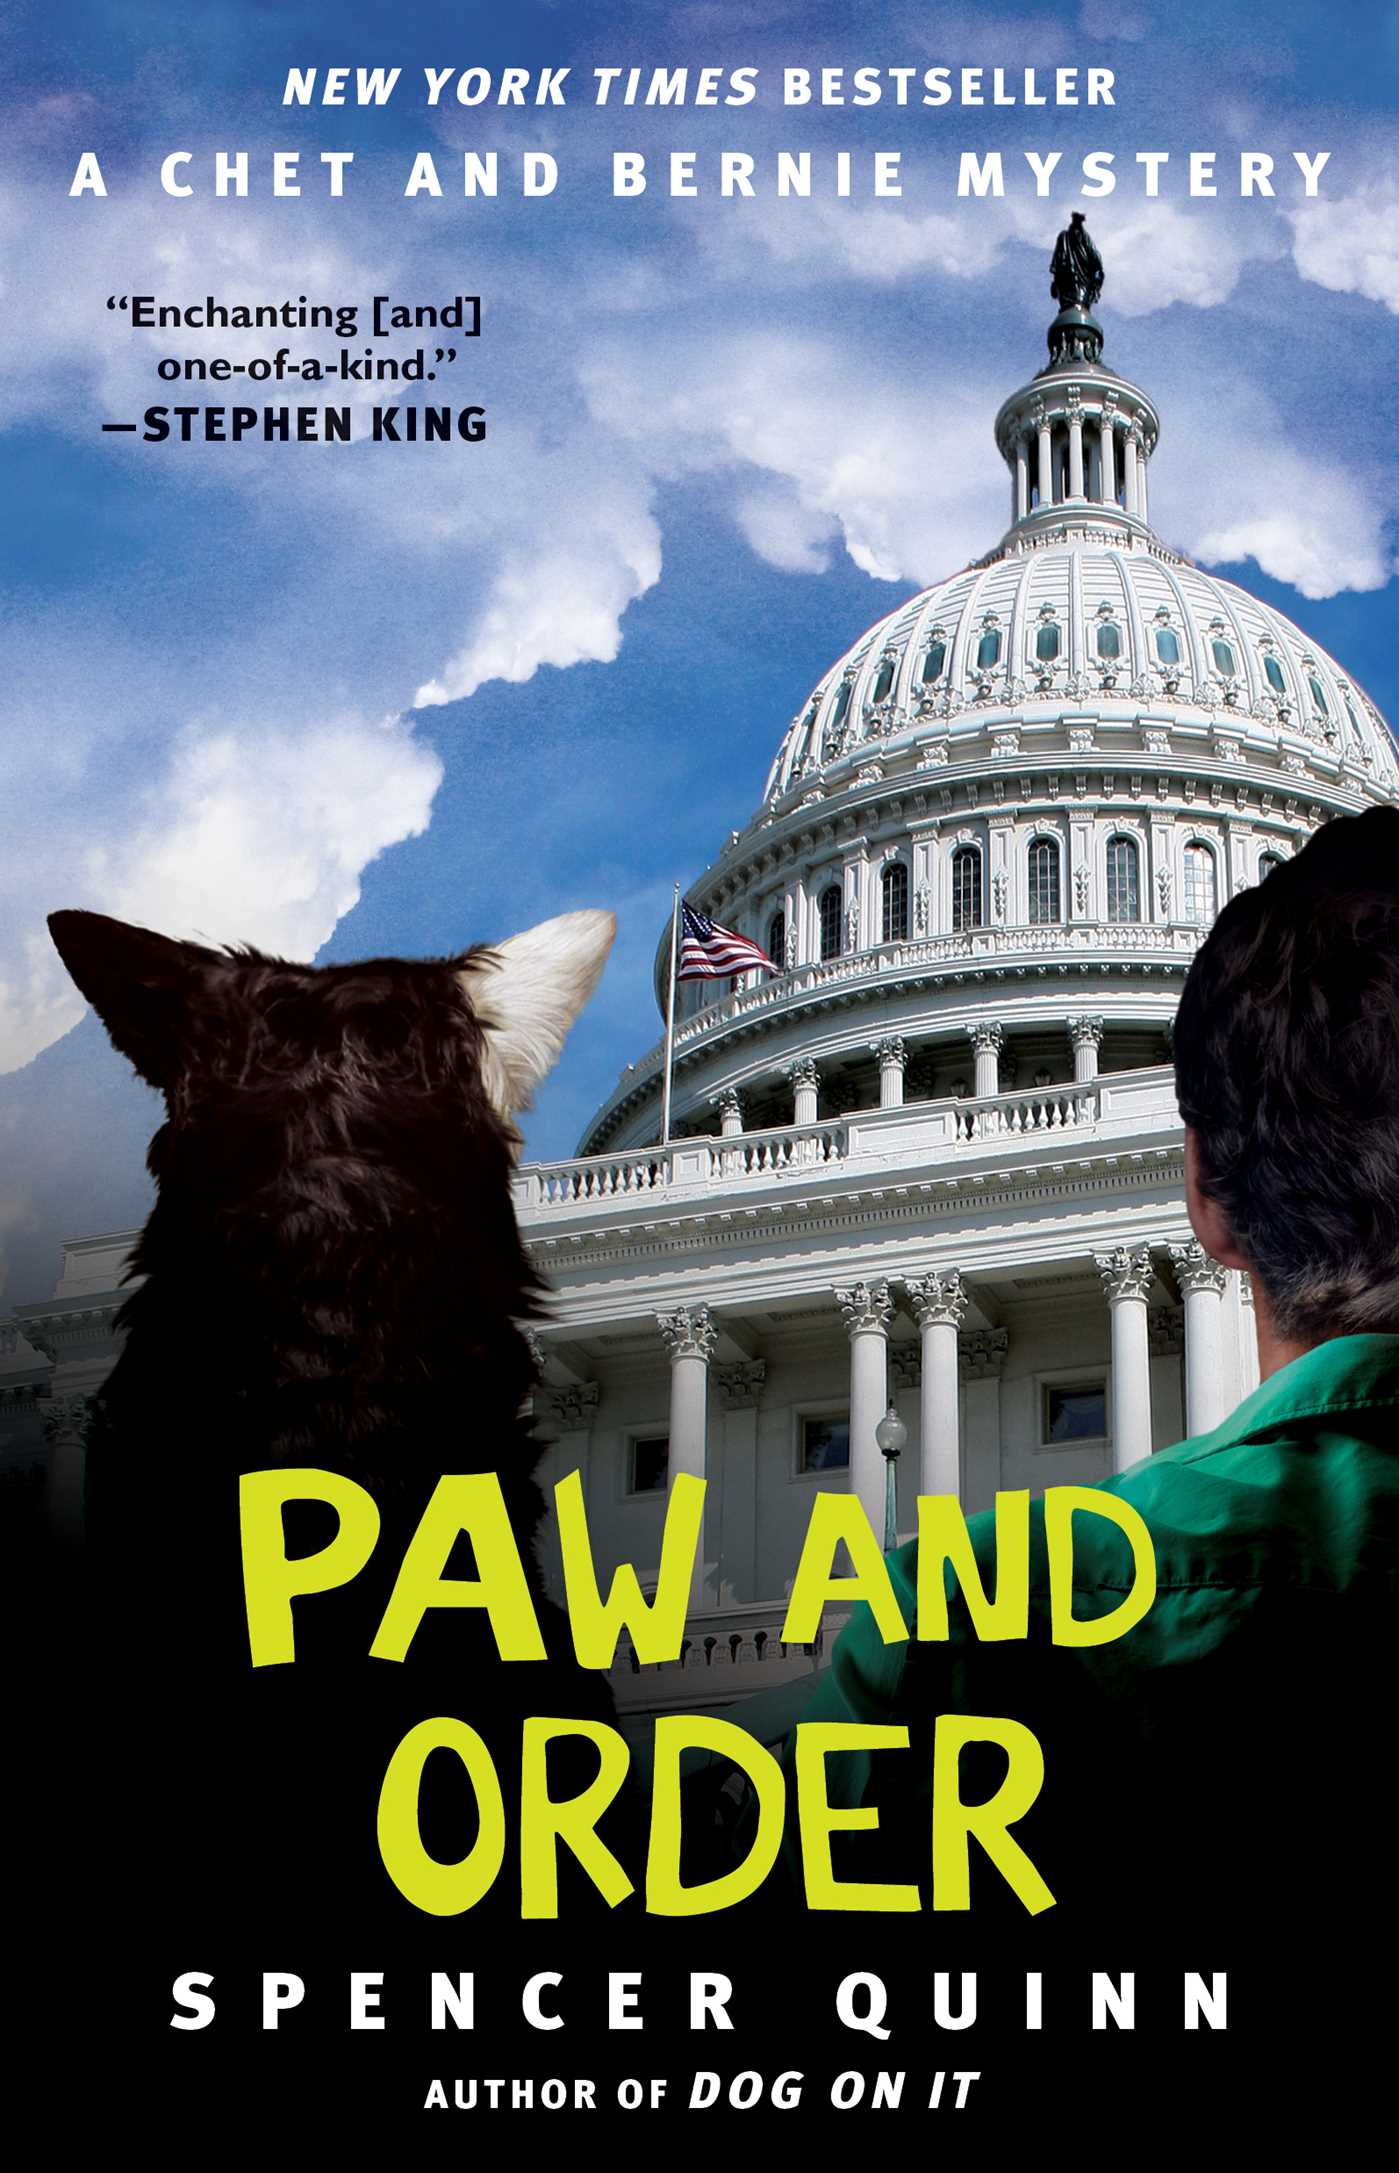 Paw-and-order-9781476703404_hr